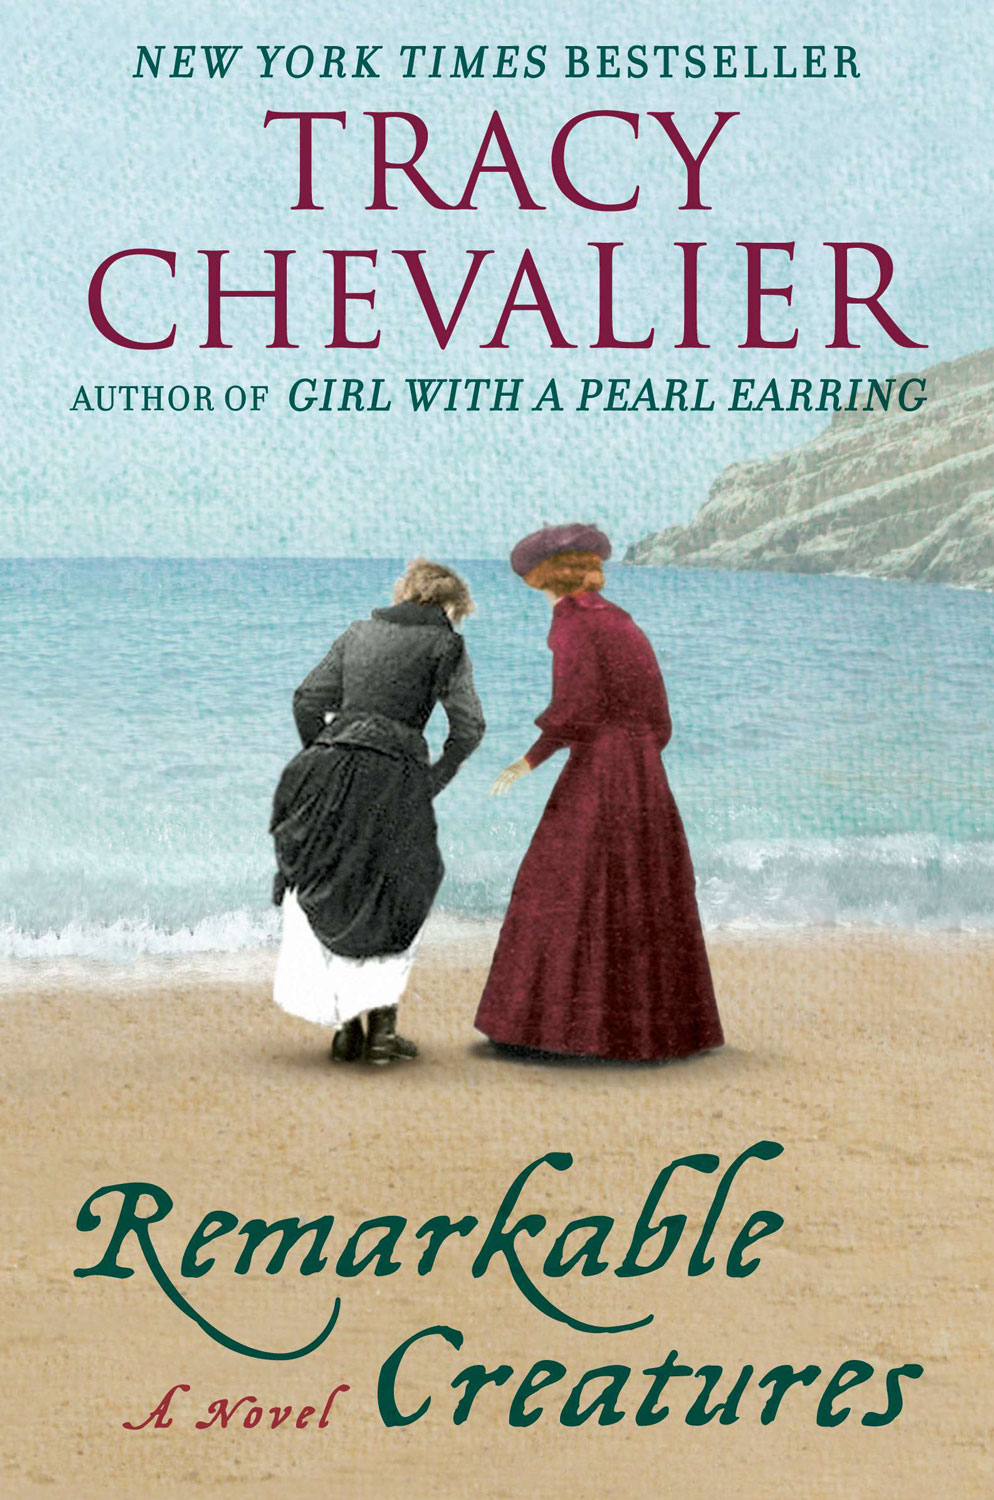 Tracy Chevalier, Remarkable Creatures (2009)